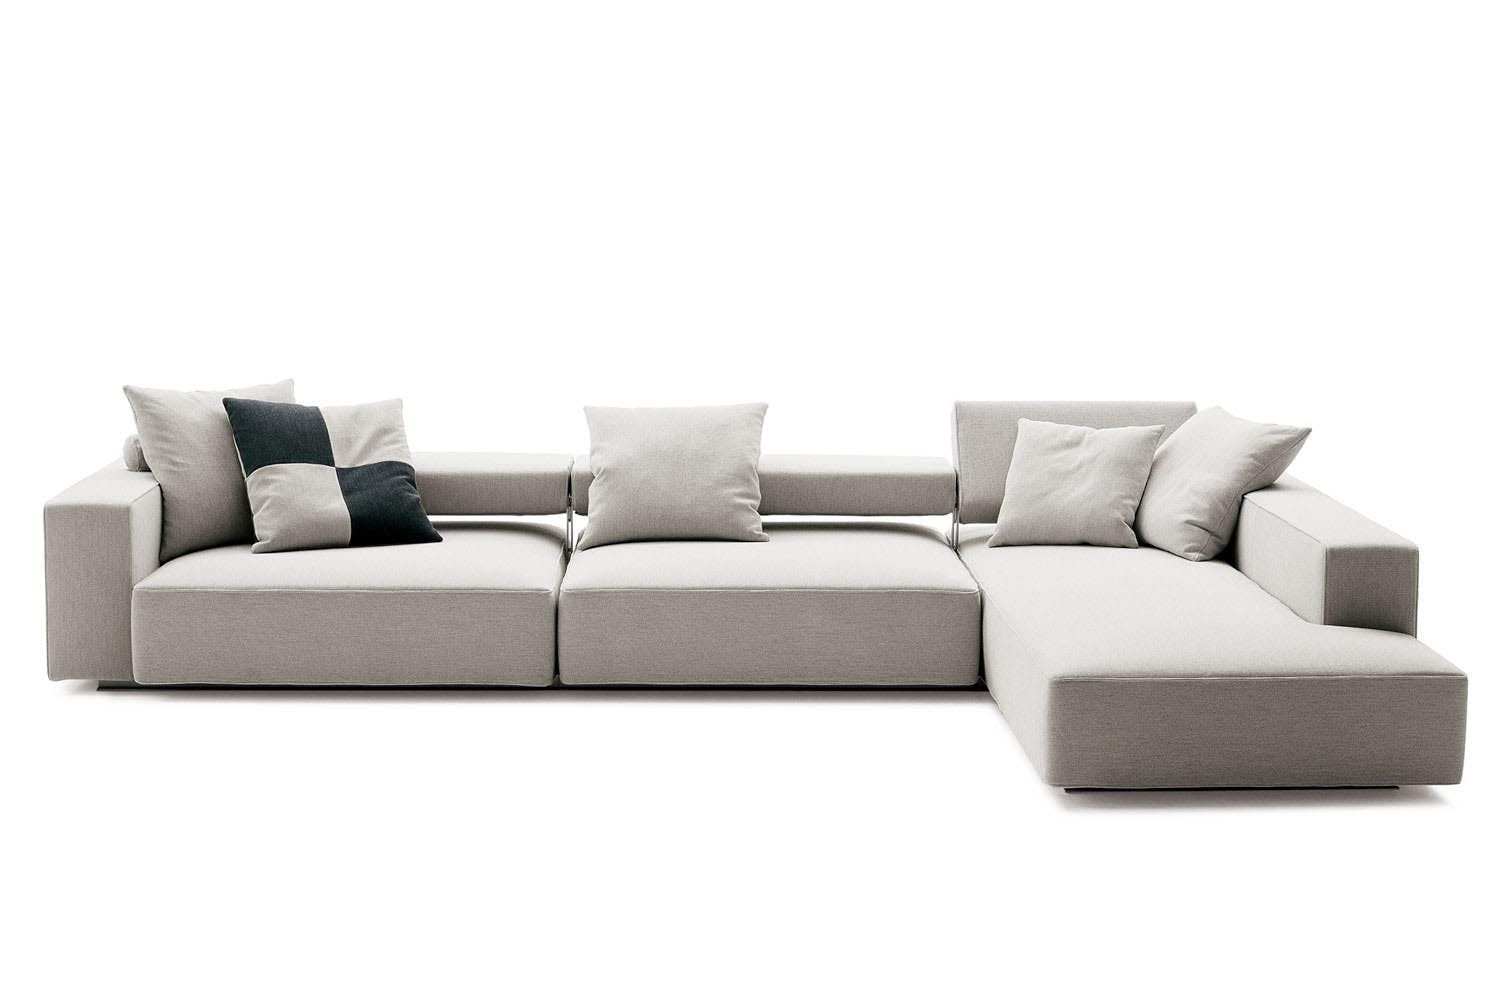 andy sofa by paolo piva for b b italia space furniture. Black Bedroom Furniture Sets. Home Design Ideas